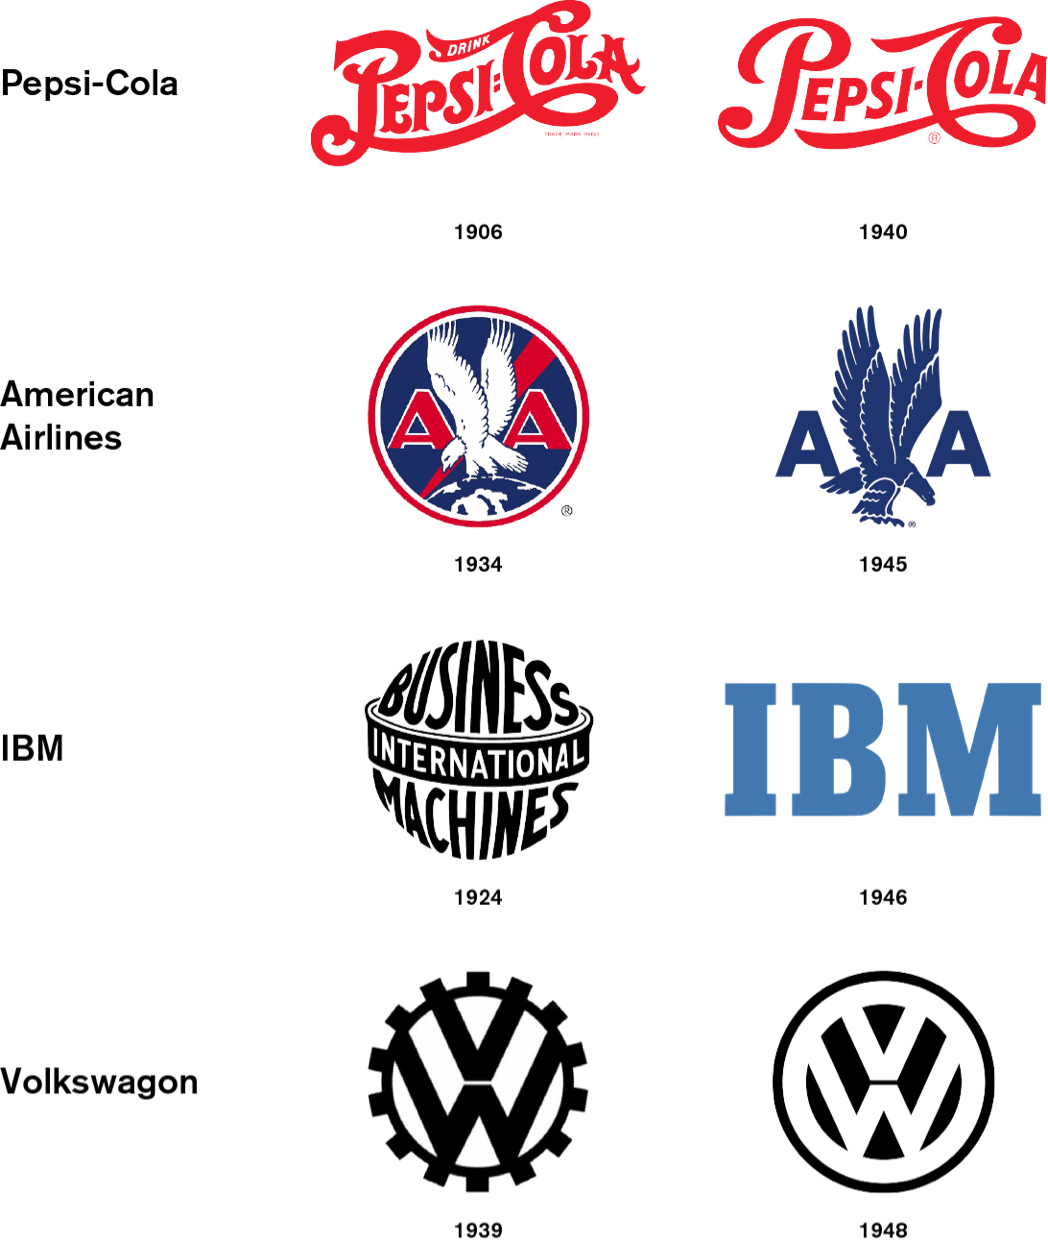 An assortment of logos from different time periods by companies Pepsi, American Airlines, IBM, and Volkswagen.